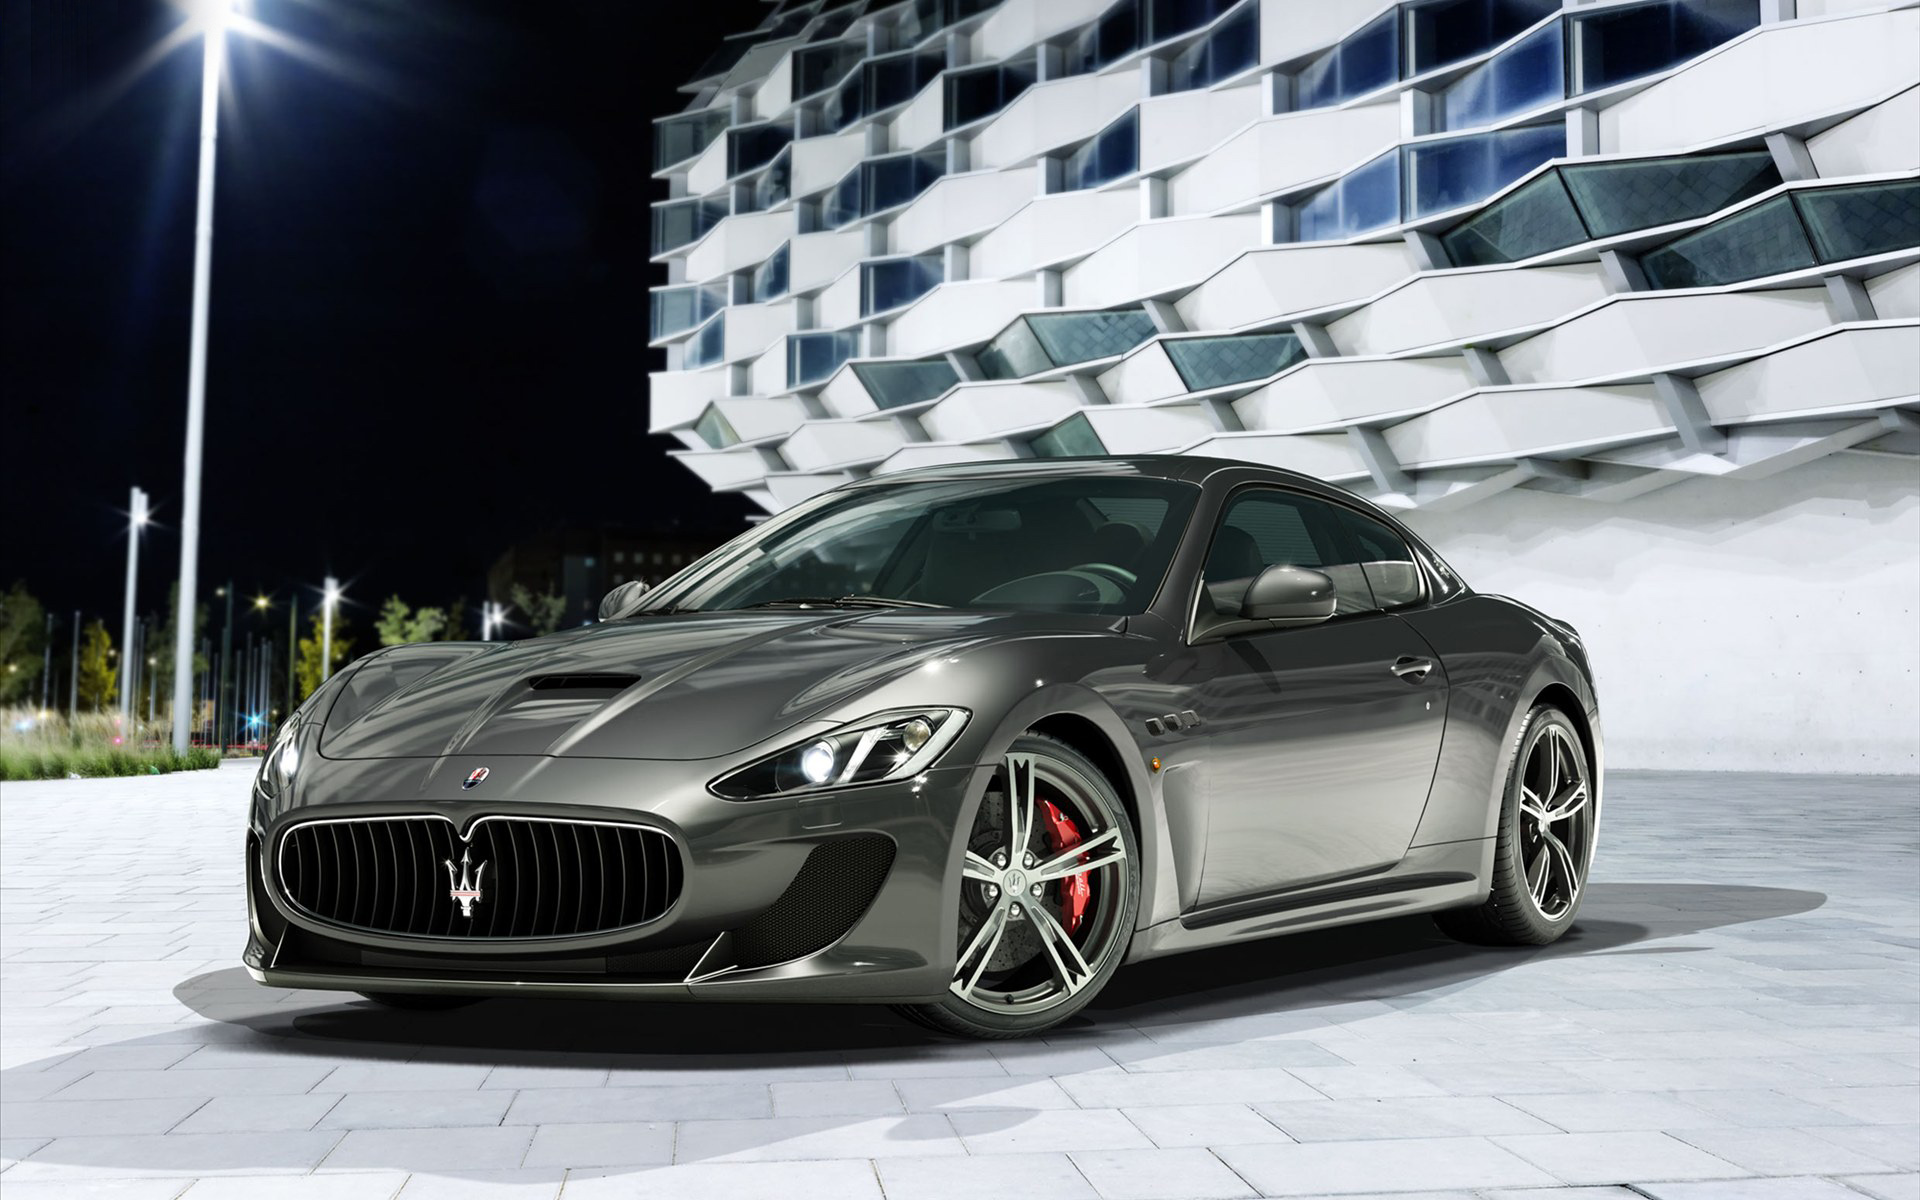 2014 Maserati GranTurismo MC Stradale Wallpaper HD Car Wallpapers 1920x1200